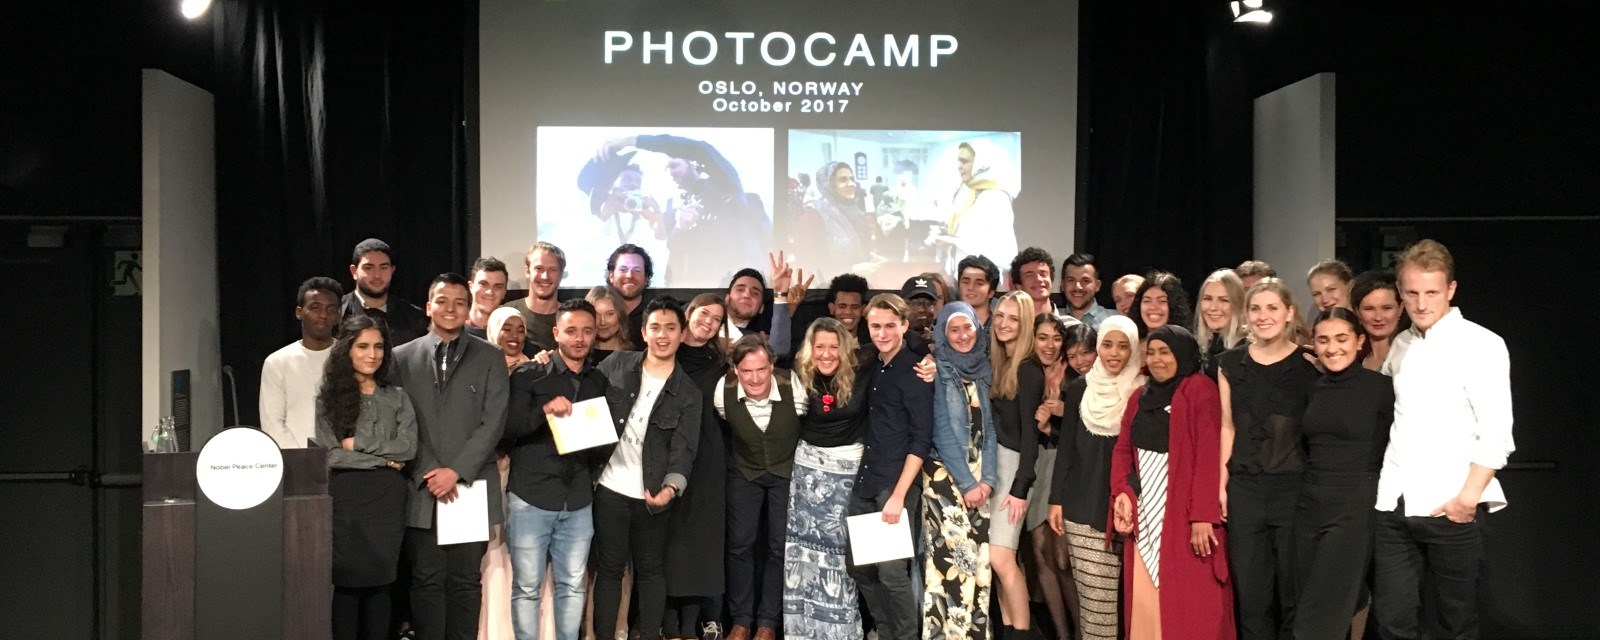 National Geographic Photo Camp-studentene poserer på presentasjon hos Nobels fredssenter